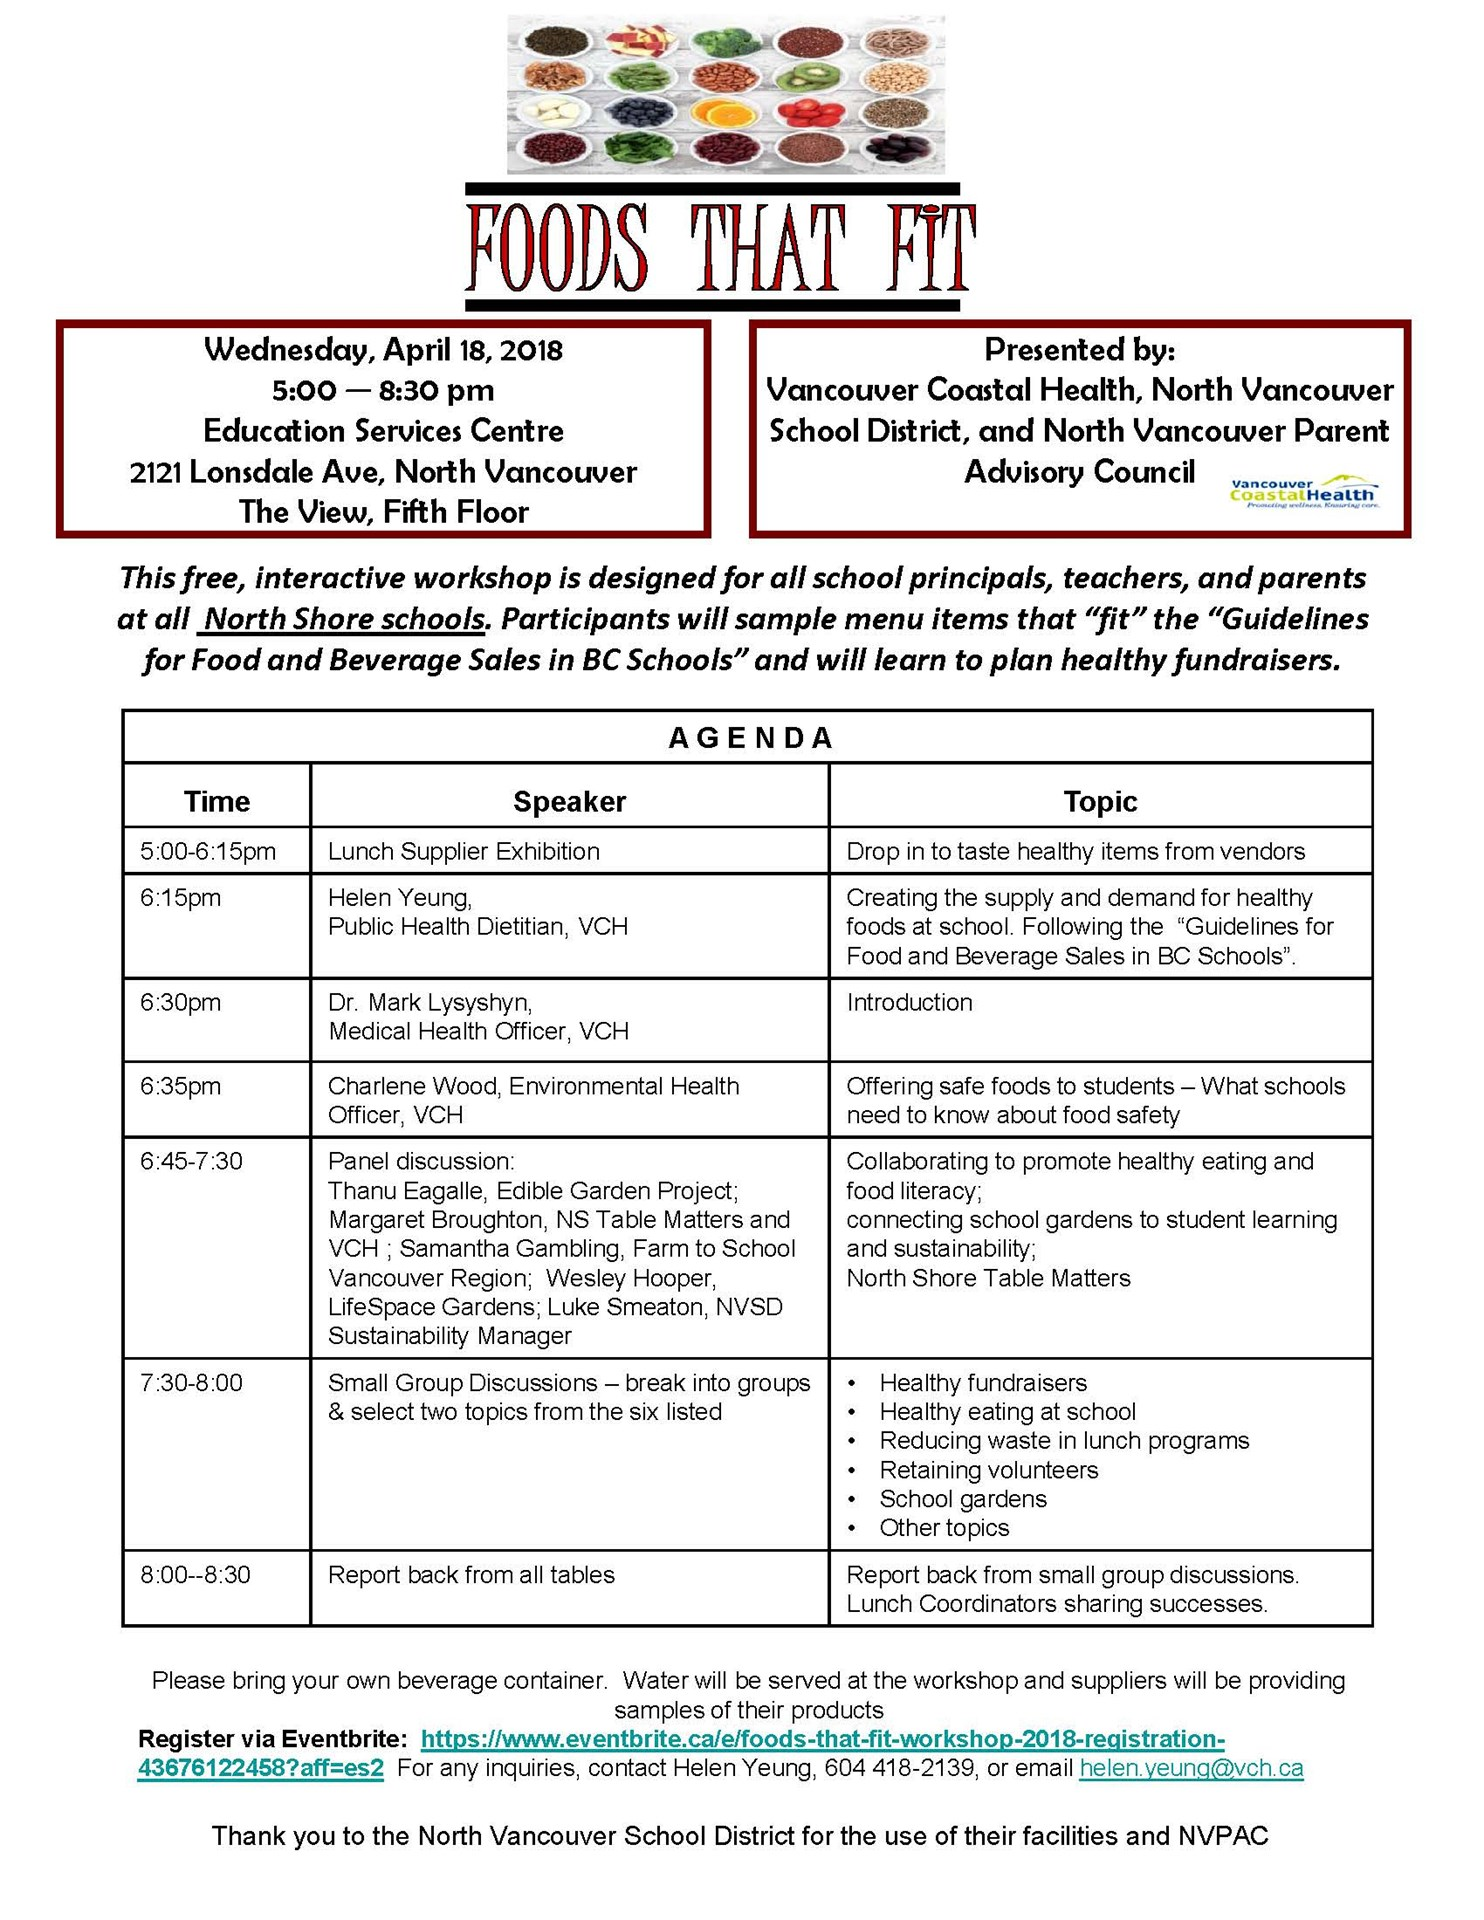 Foods That Fit April 18 2018 flyer Final.jpg